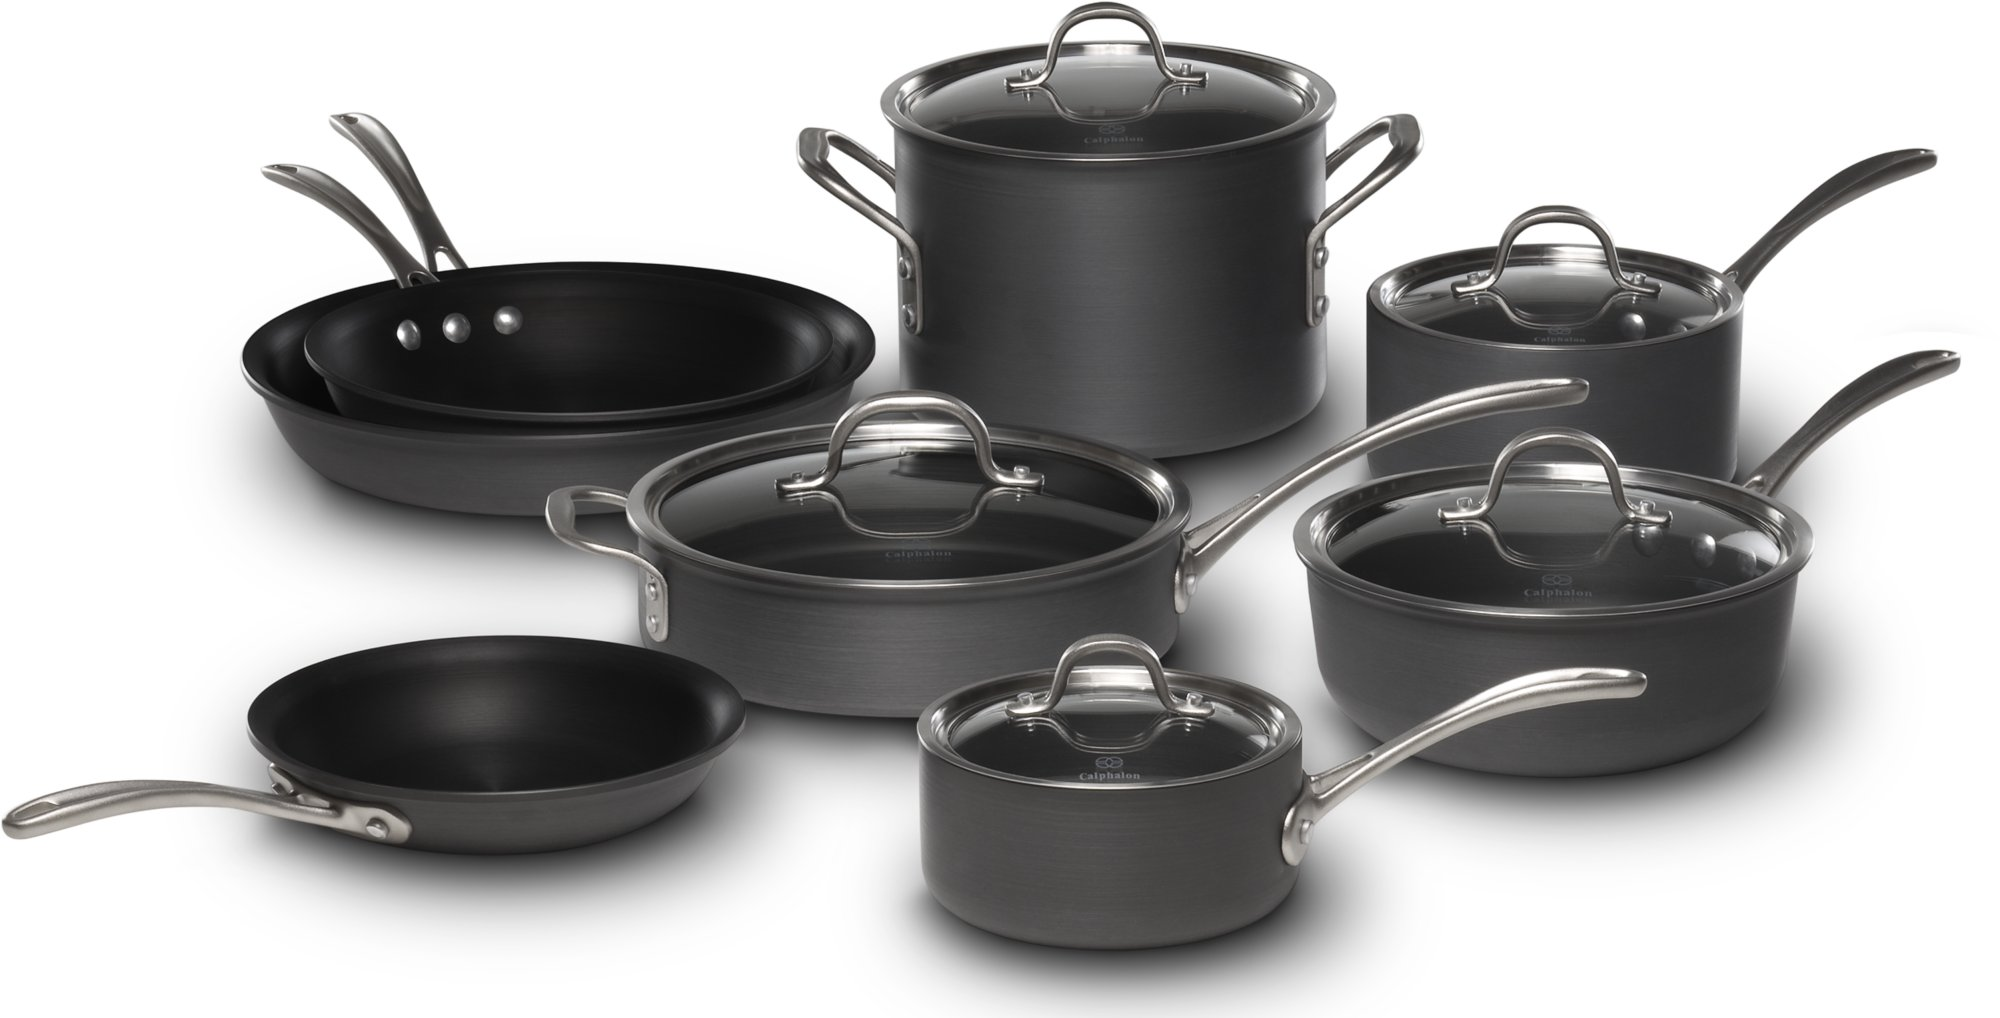 Calphalon Commercial Nonstick 13-pc. Cookware Set